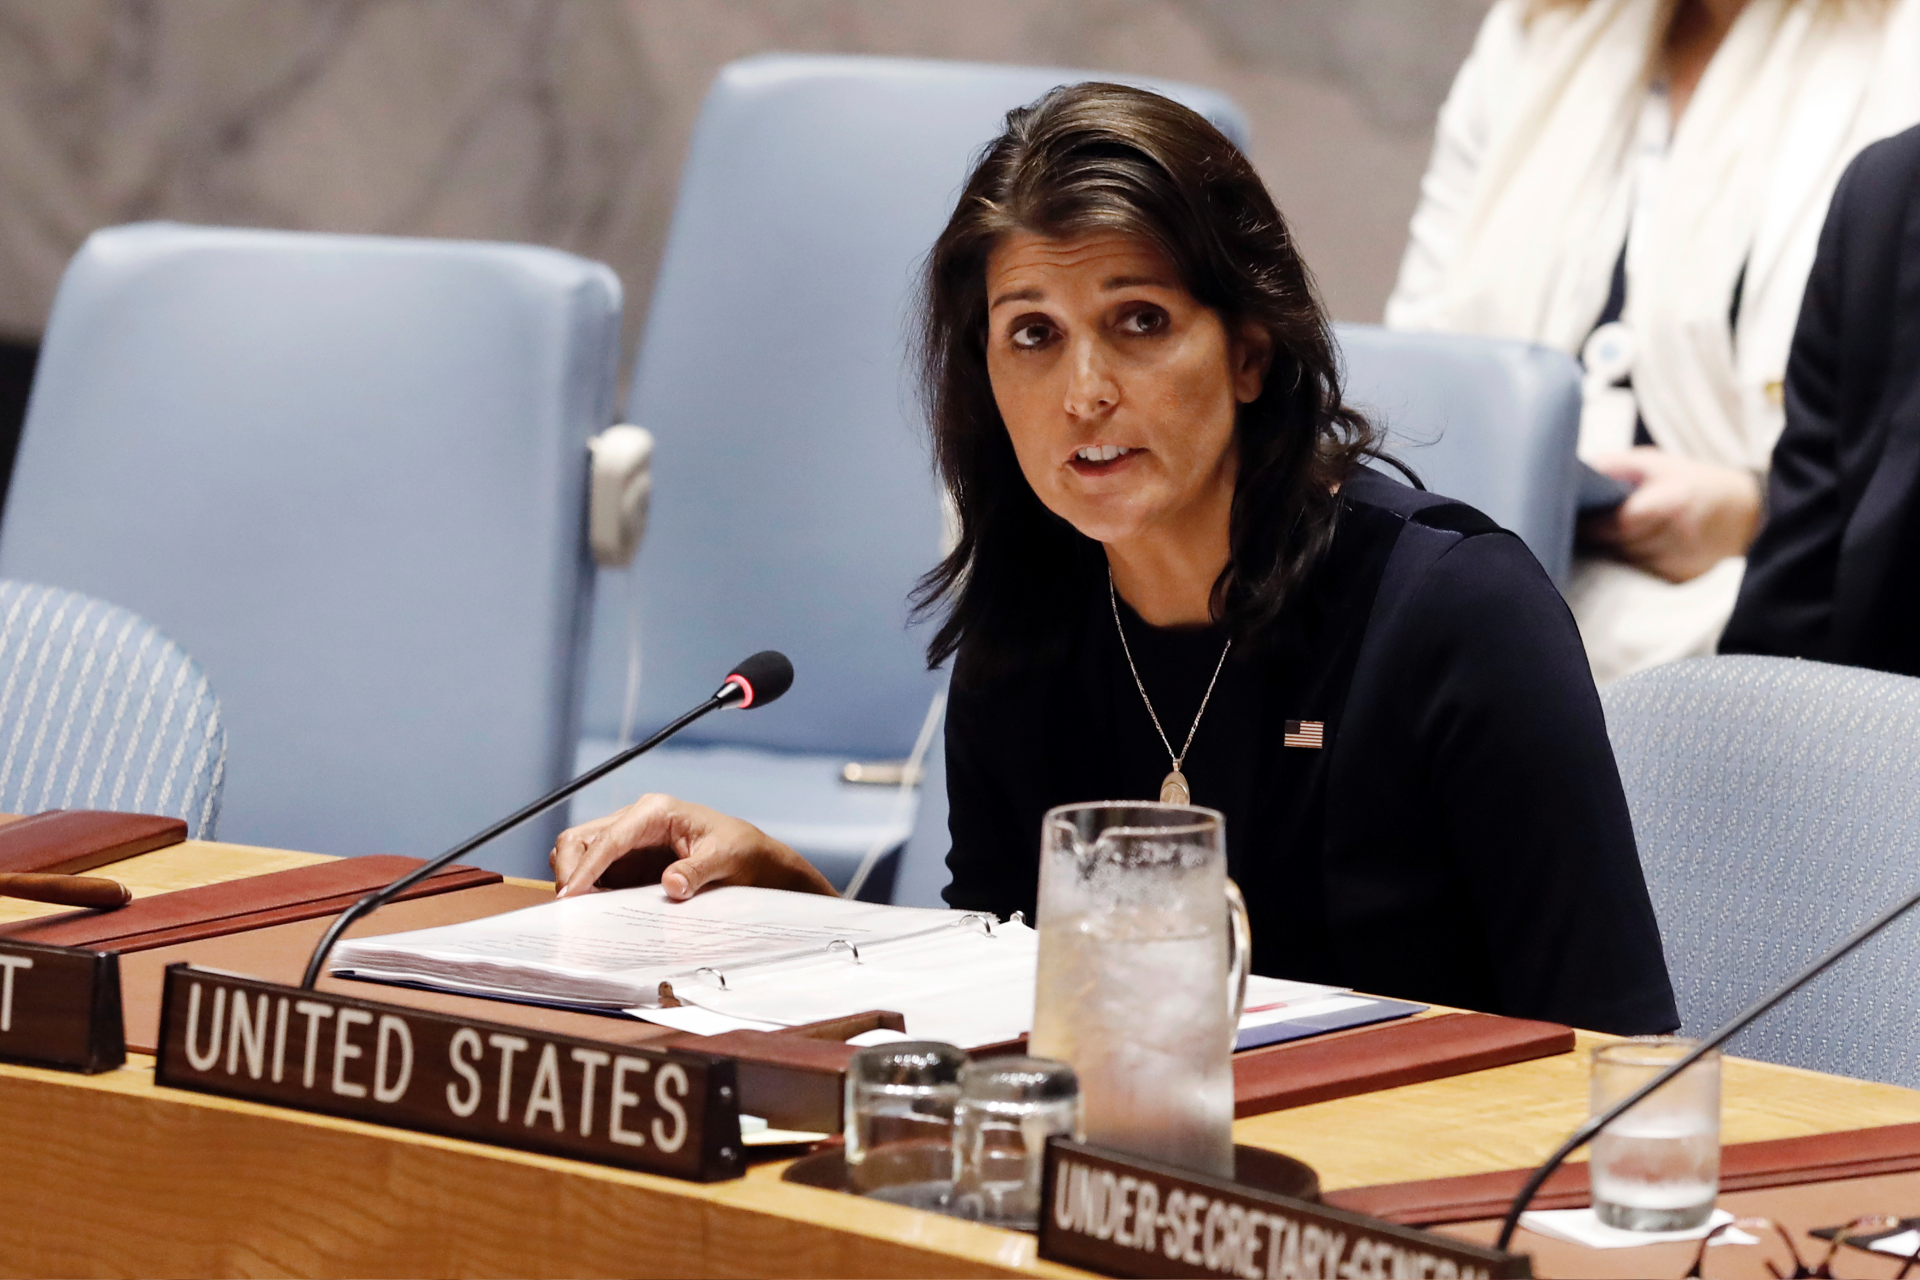 UN fails to adopt US resolution condemning Hamas terrorism